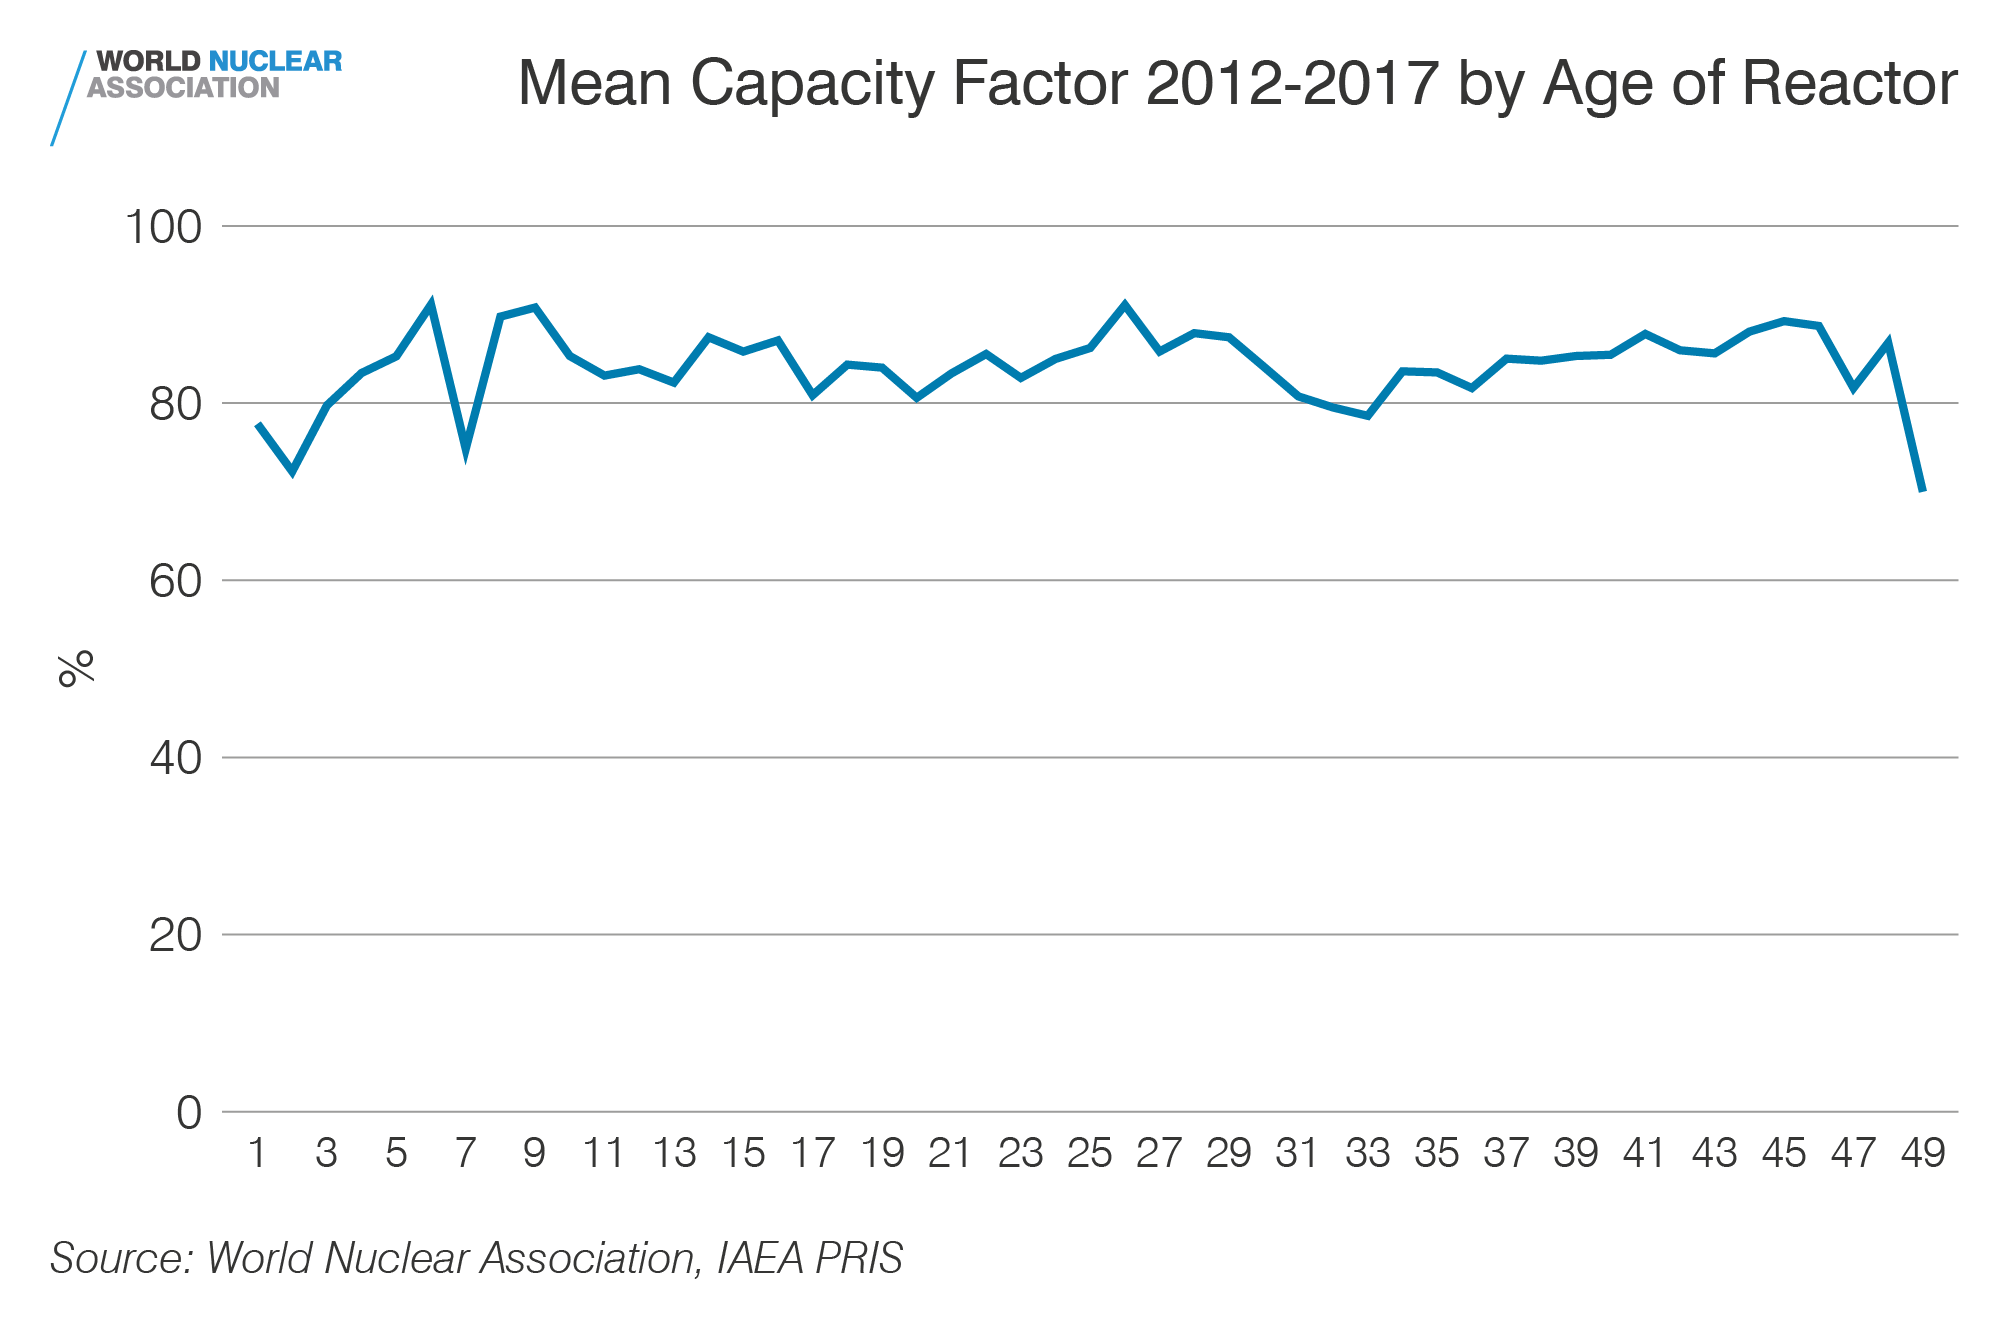 Mean capacity factor 2012-2017 by age of reactor